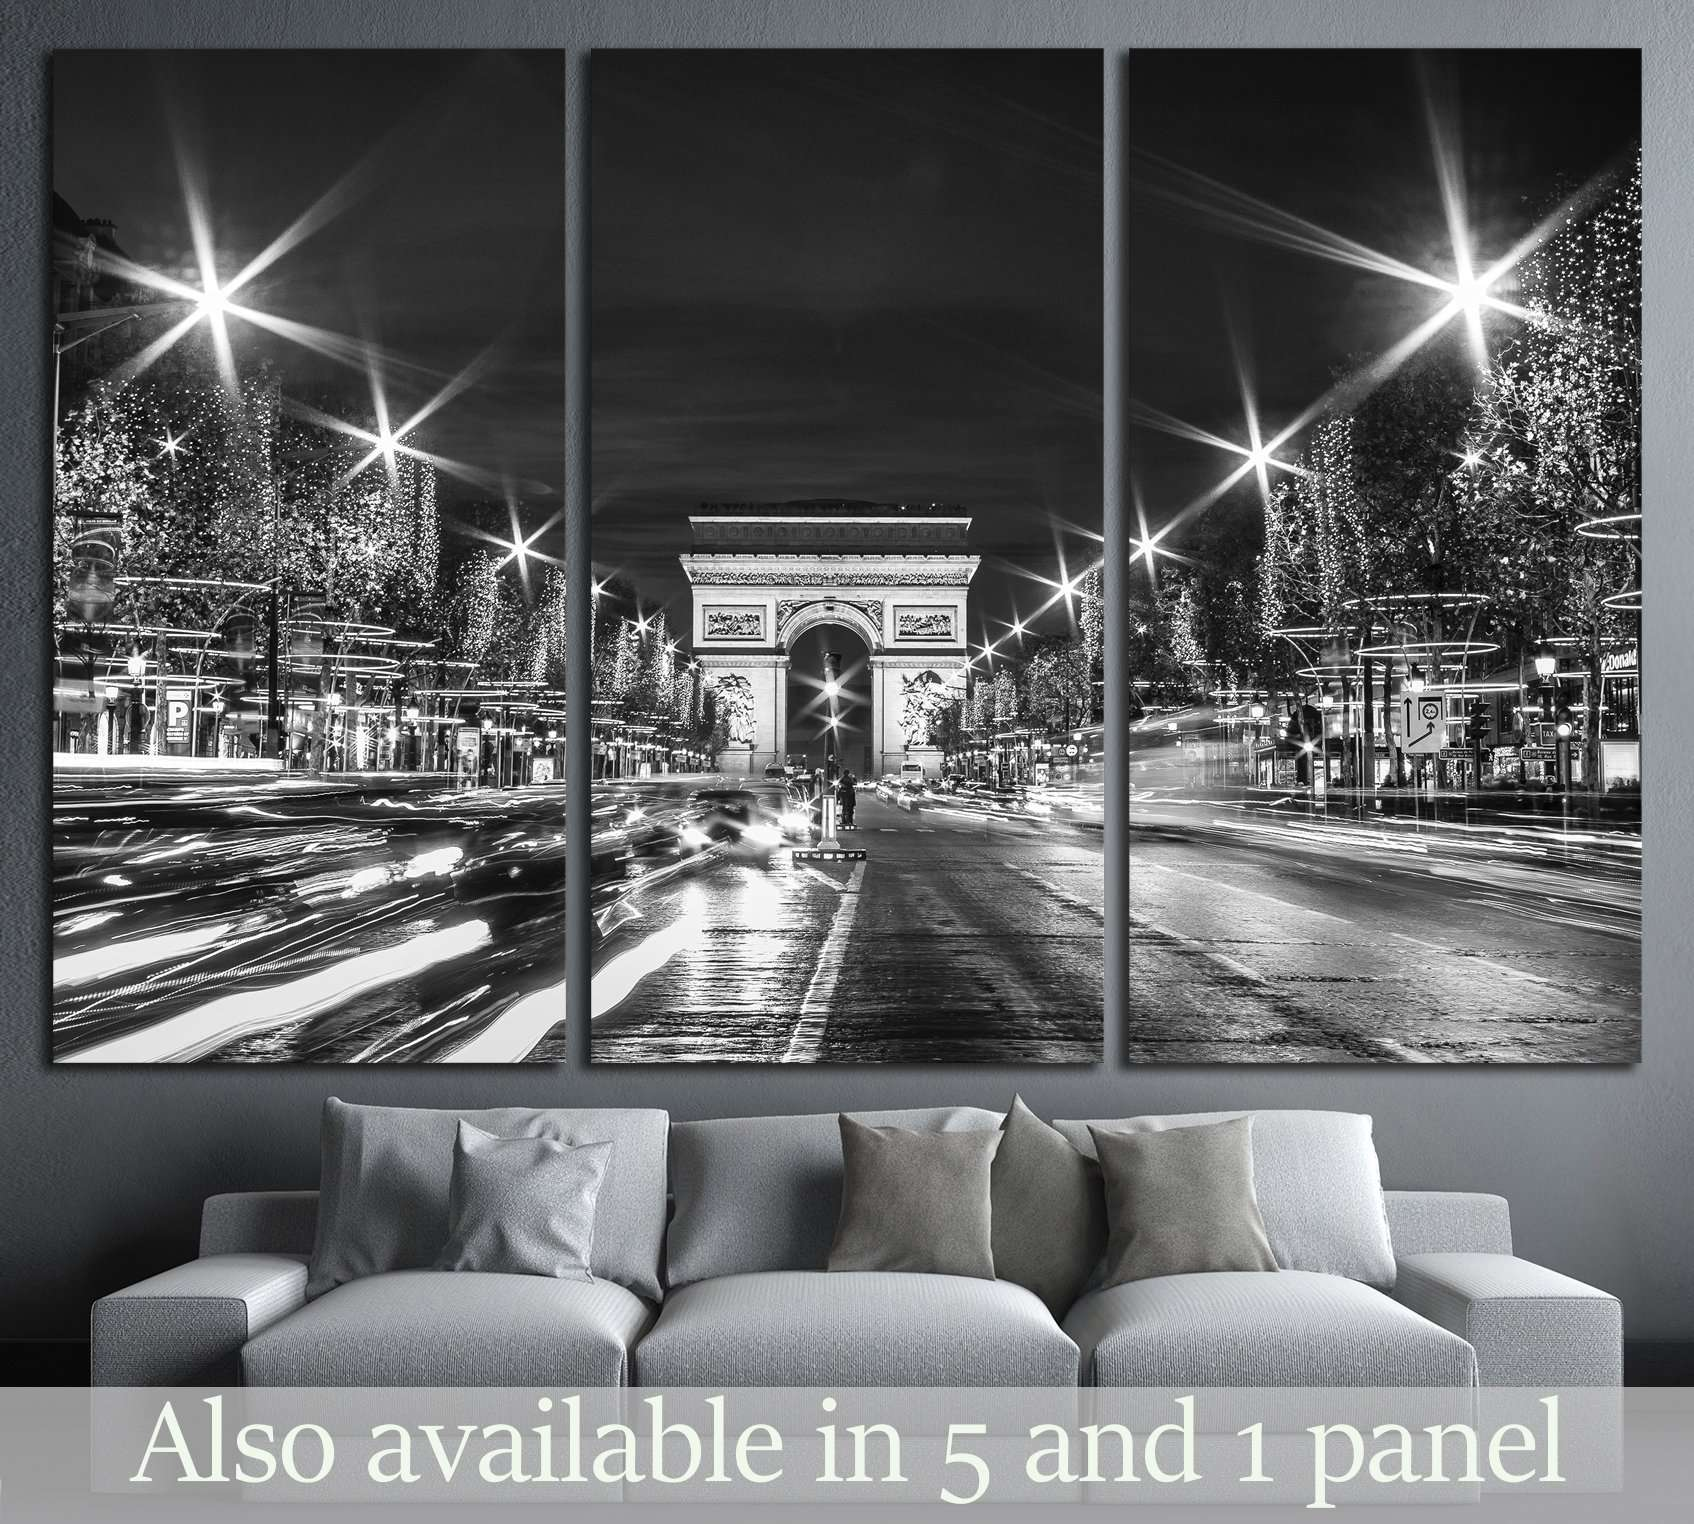 Black And White Paris Evening Traffic On Champs Elysees In Front Of Arc De Triomphe No2650 Ready To Hang Canvas Print